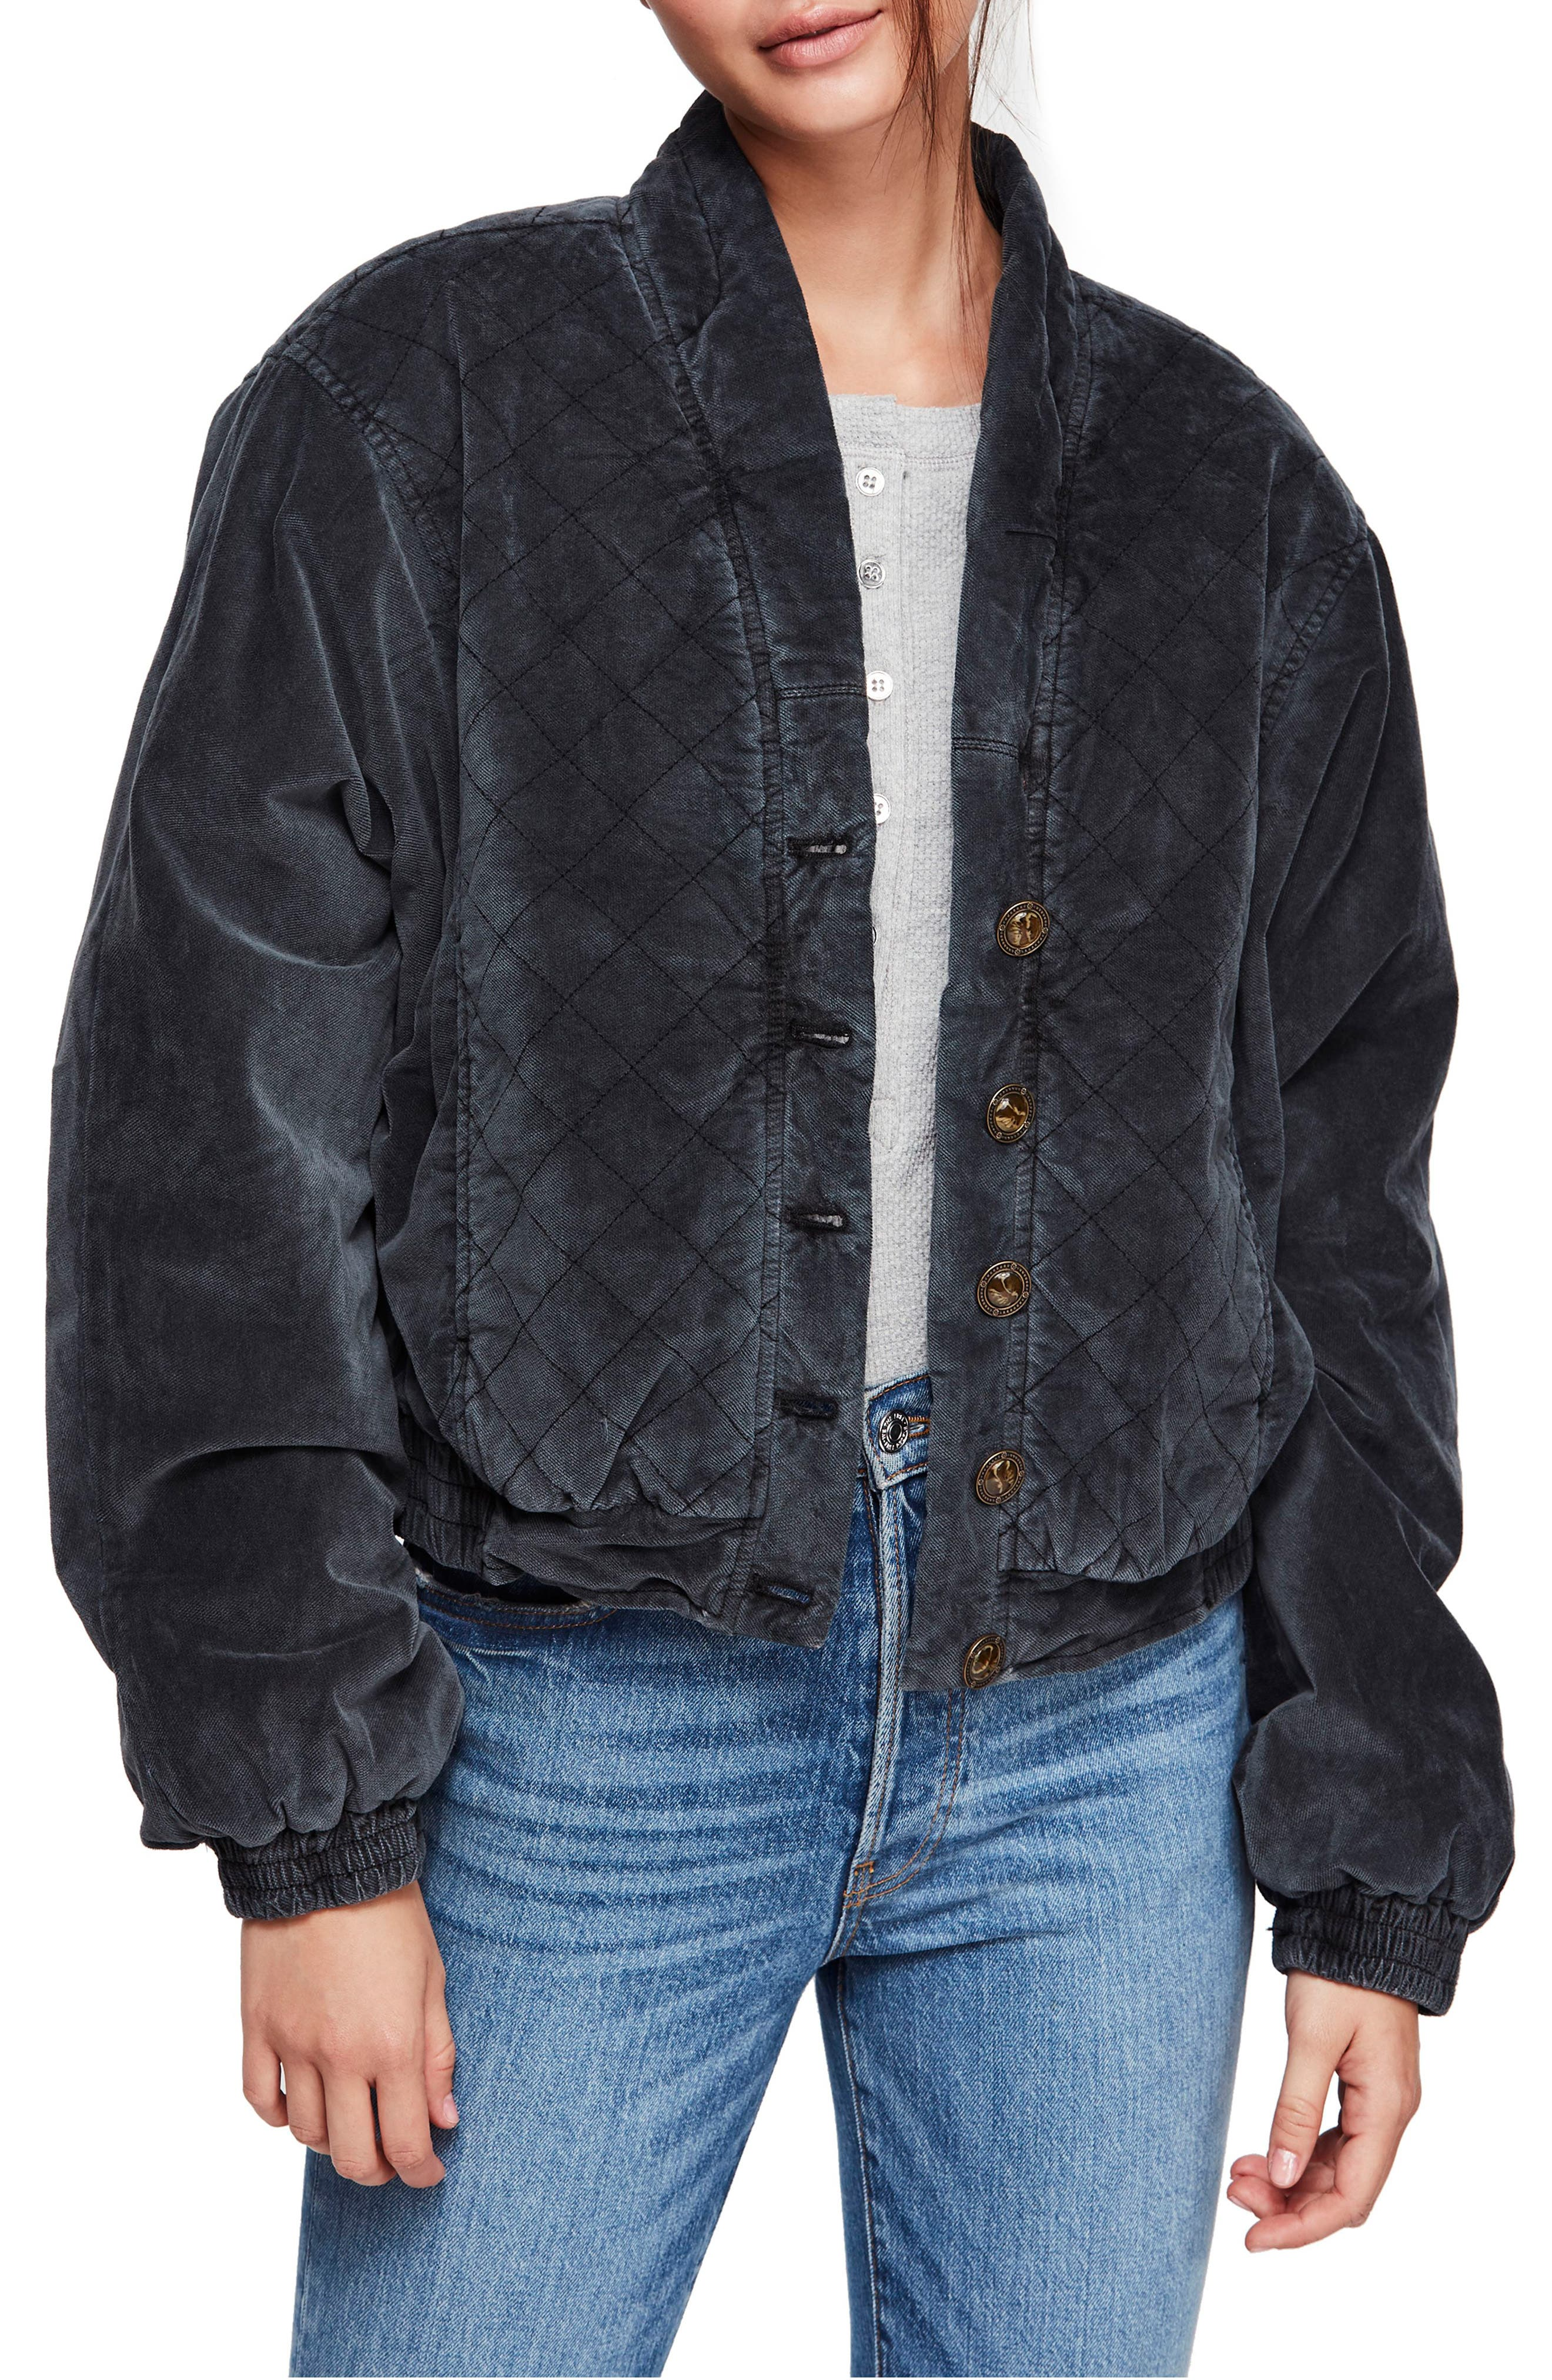 Main Squeeze Quilted Jacket,                             Main thumbnail 1, color,                             BLACK